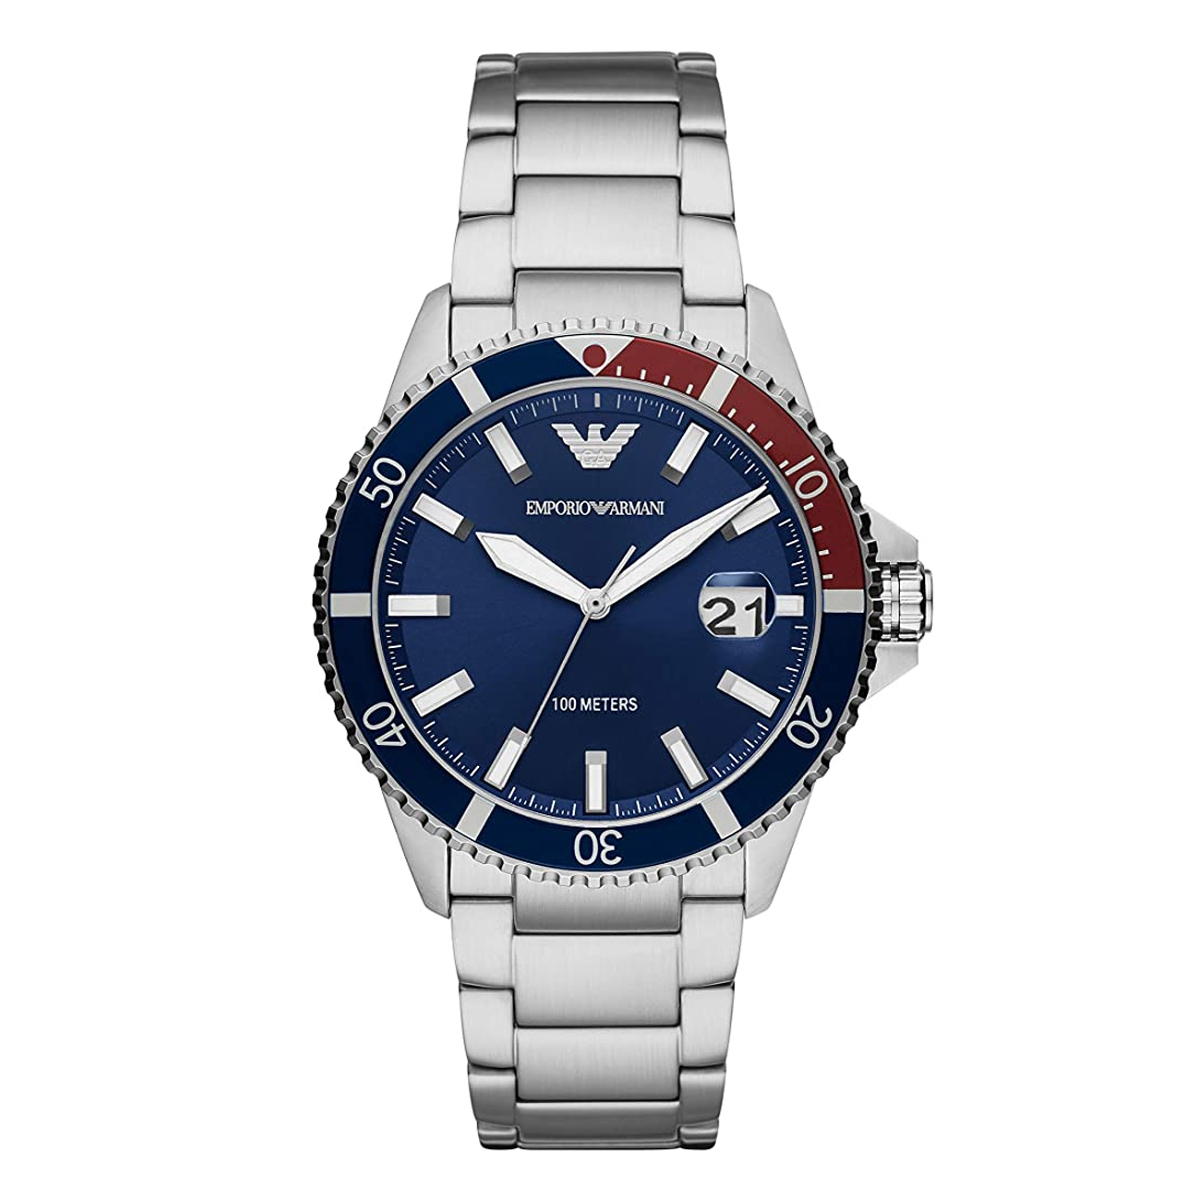 Emporio Armani Stainless Steel Watch - Blue Dial